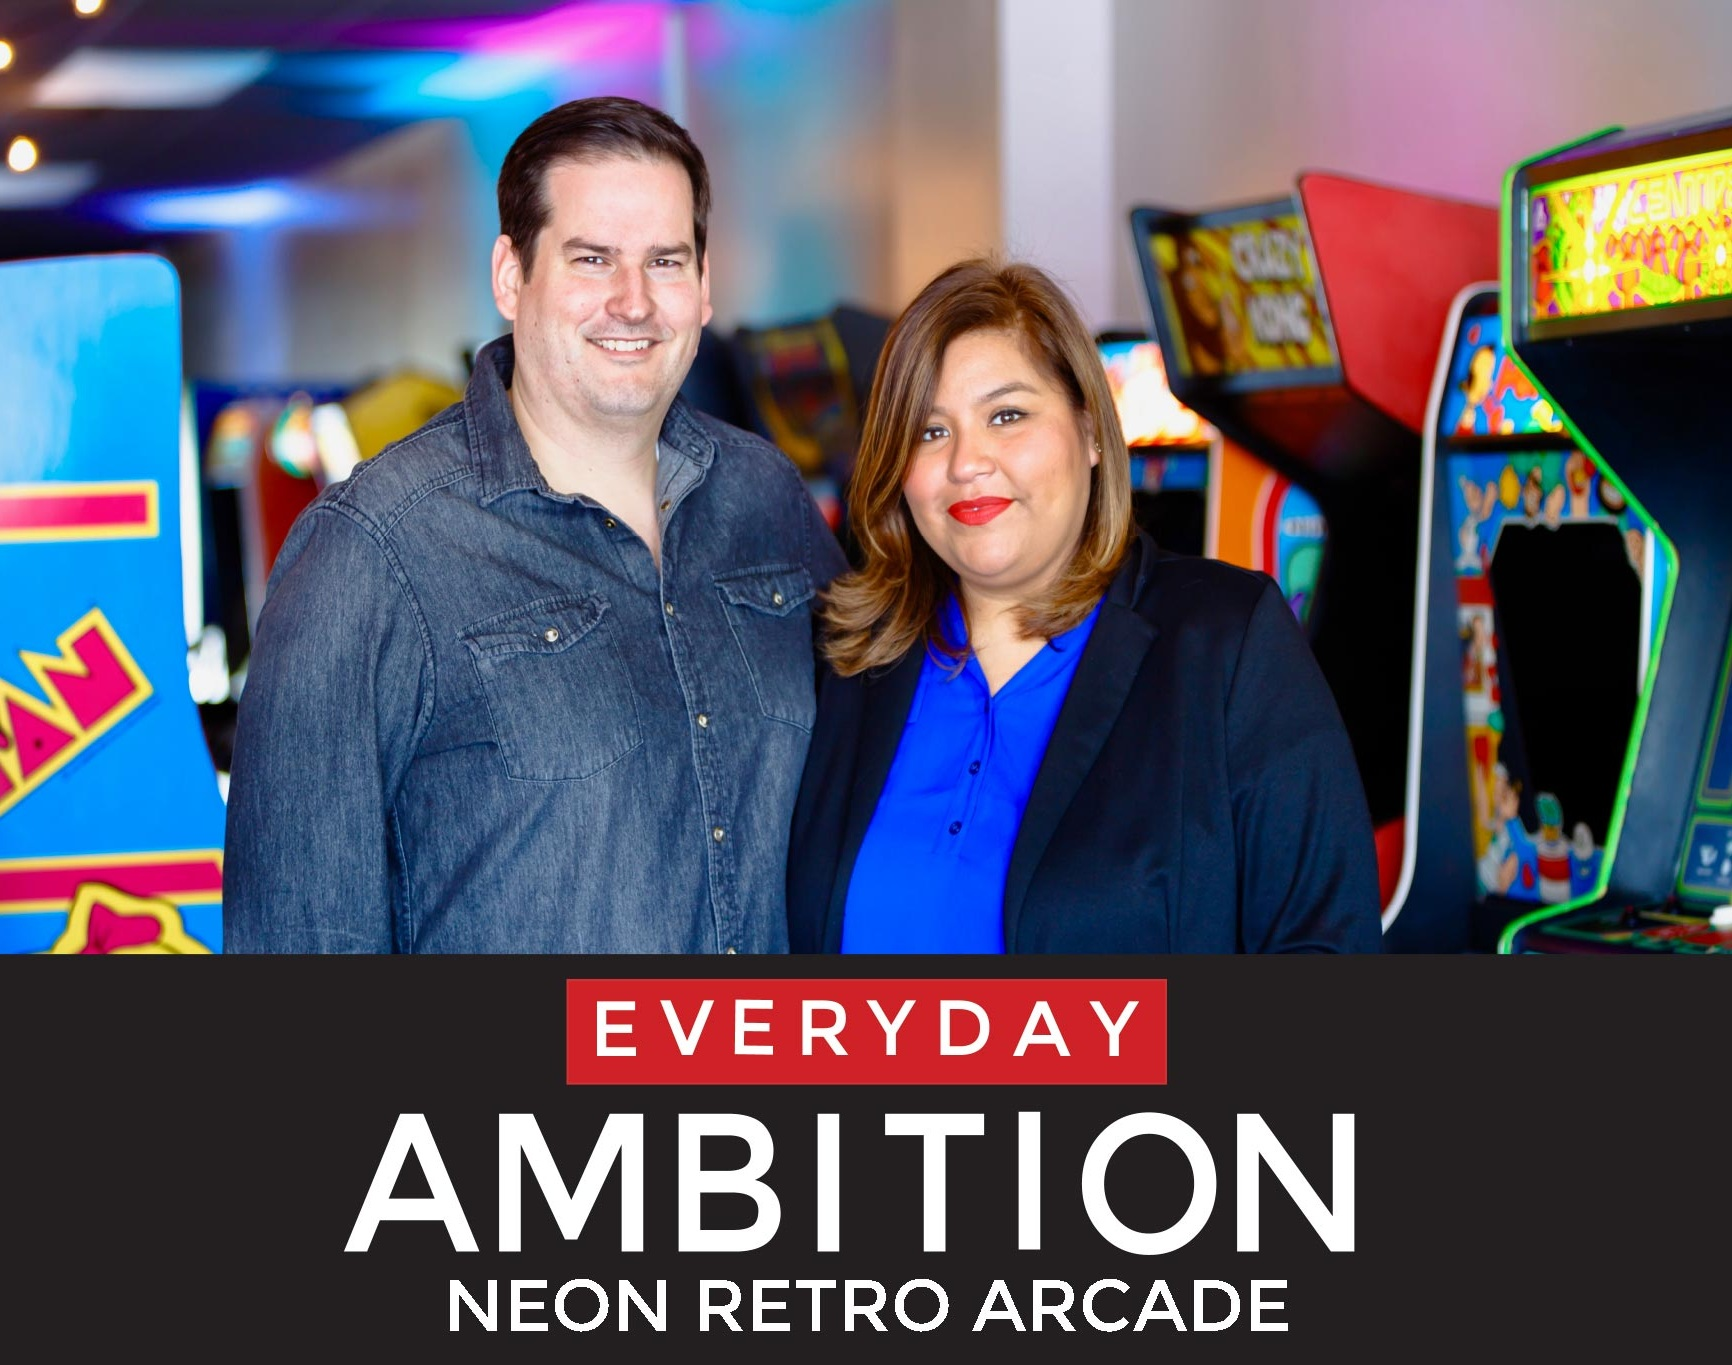 Neon Retro Arcade_with text bottom.jpg